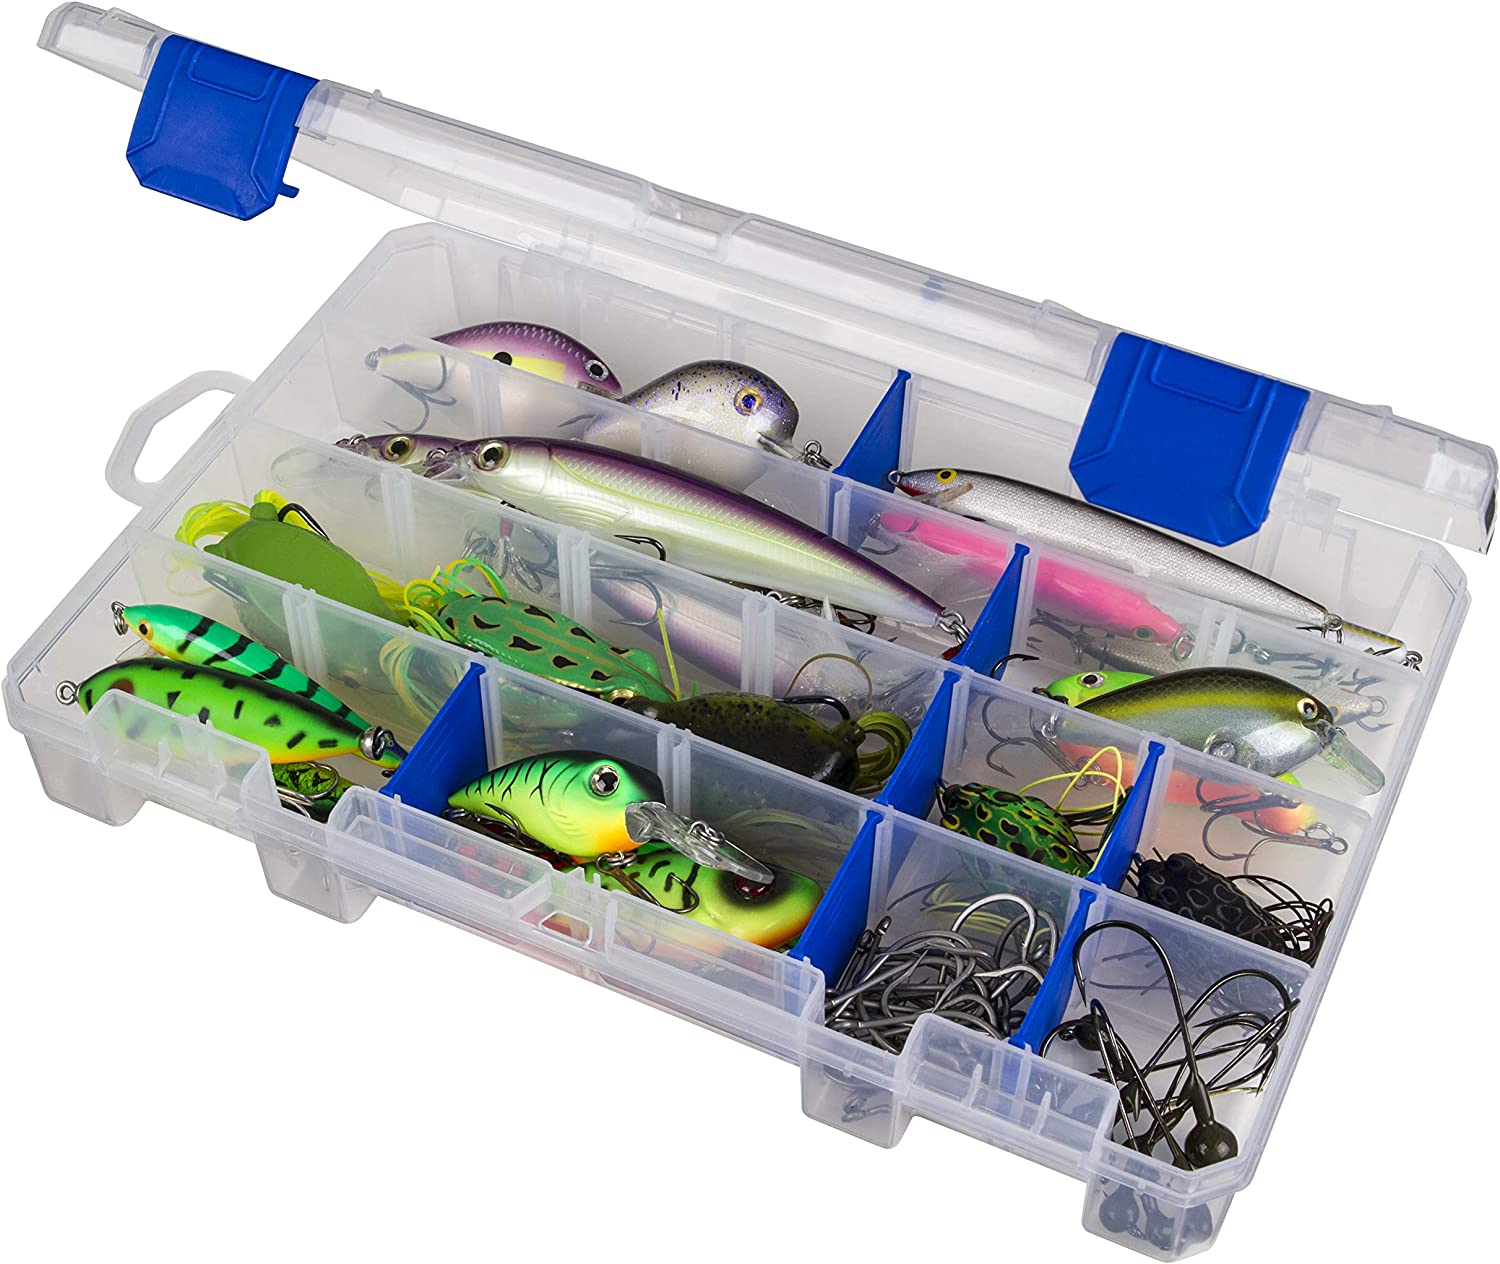 Flambeau Outdoors Tuff Tainer Tackle Box